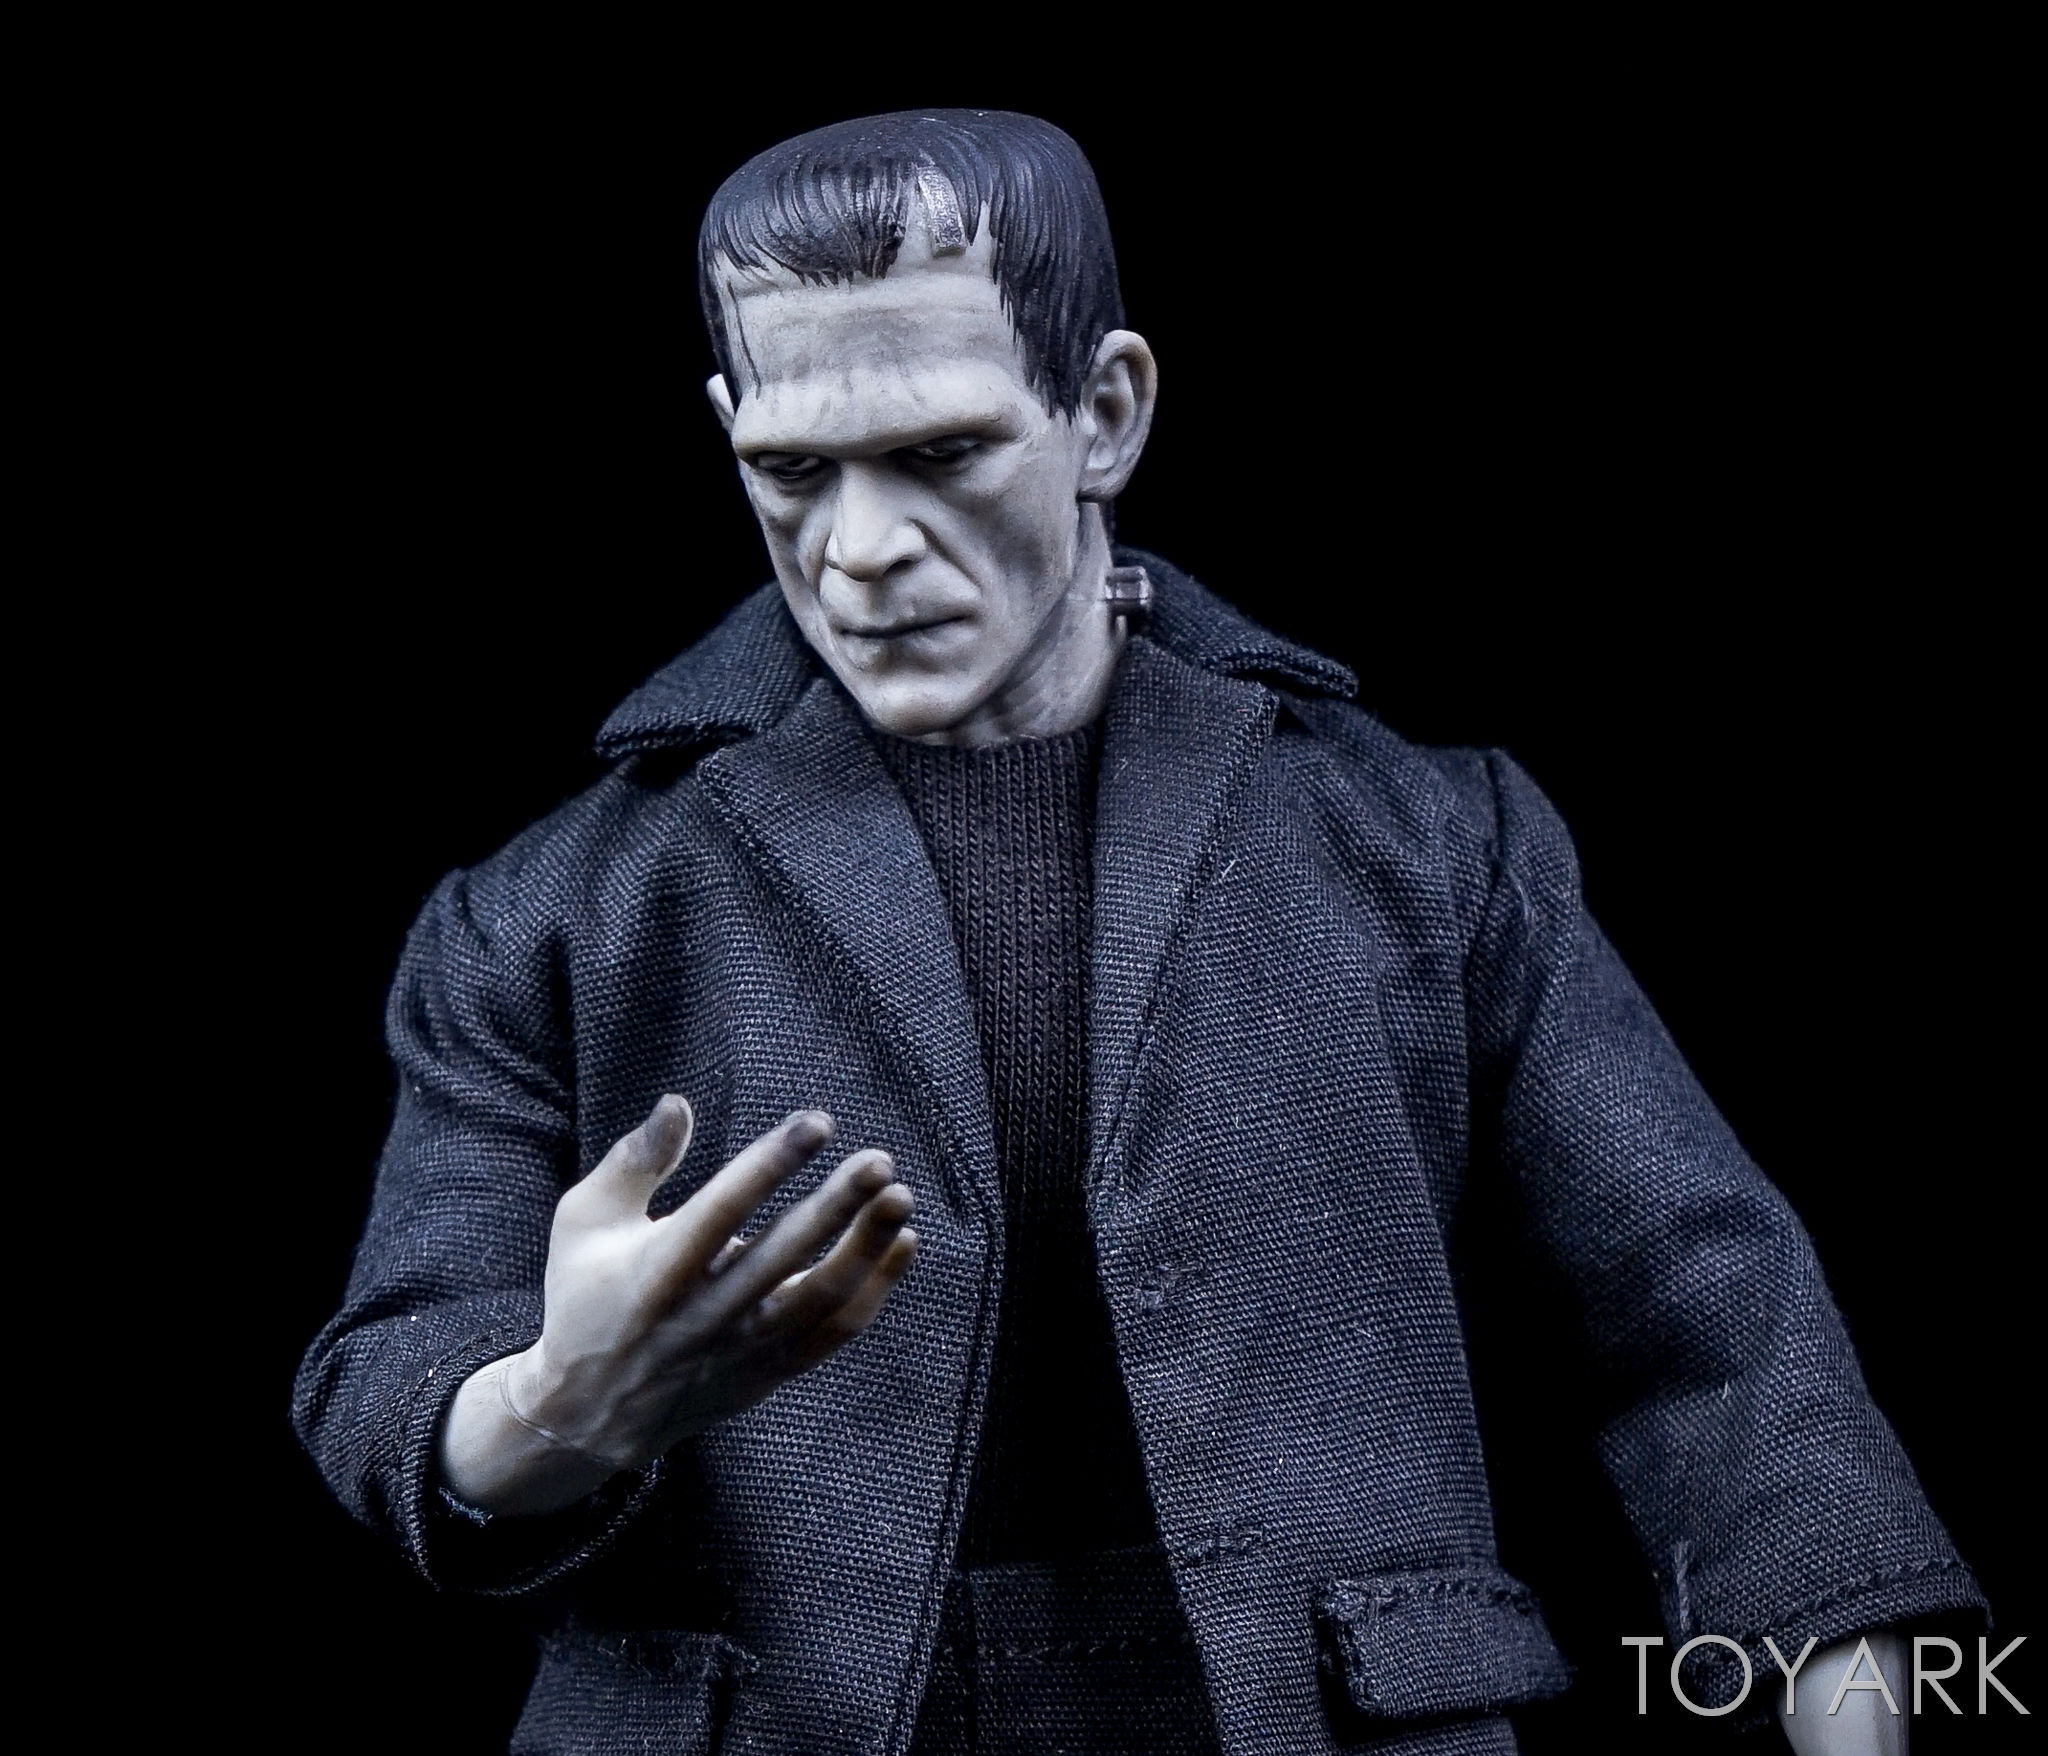 http://news.toyark.com/wp-content/uploads/sites/4/2016/12/Mezco-One12-Collective-Frankenstein-Figure-012.jpg